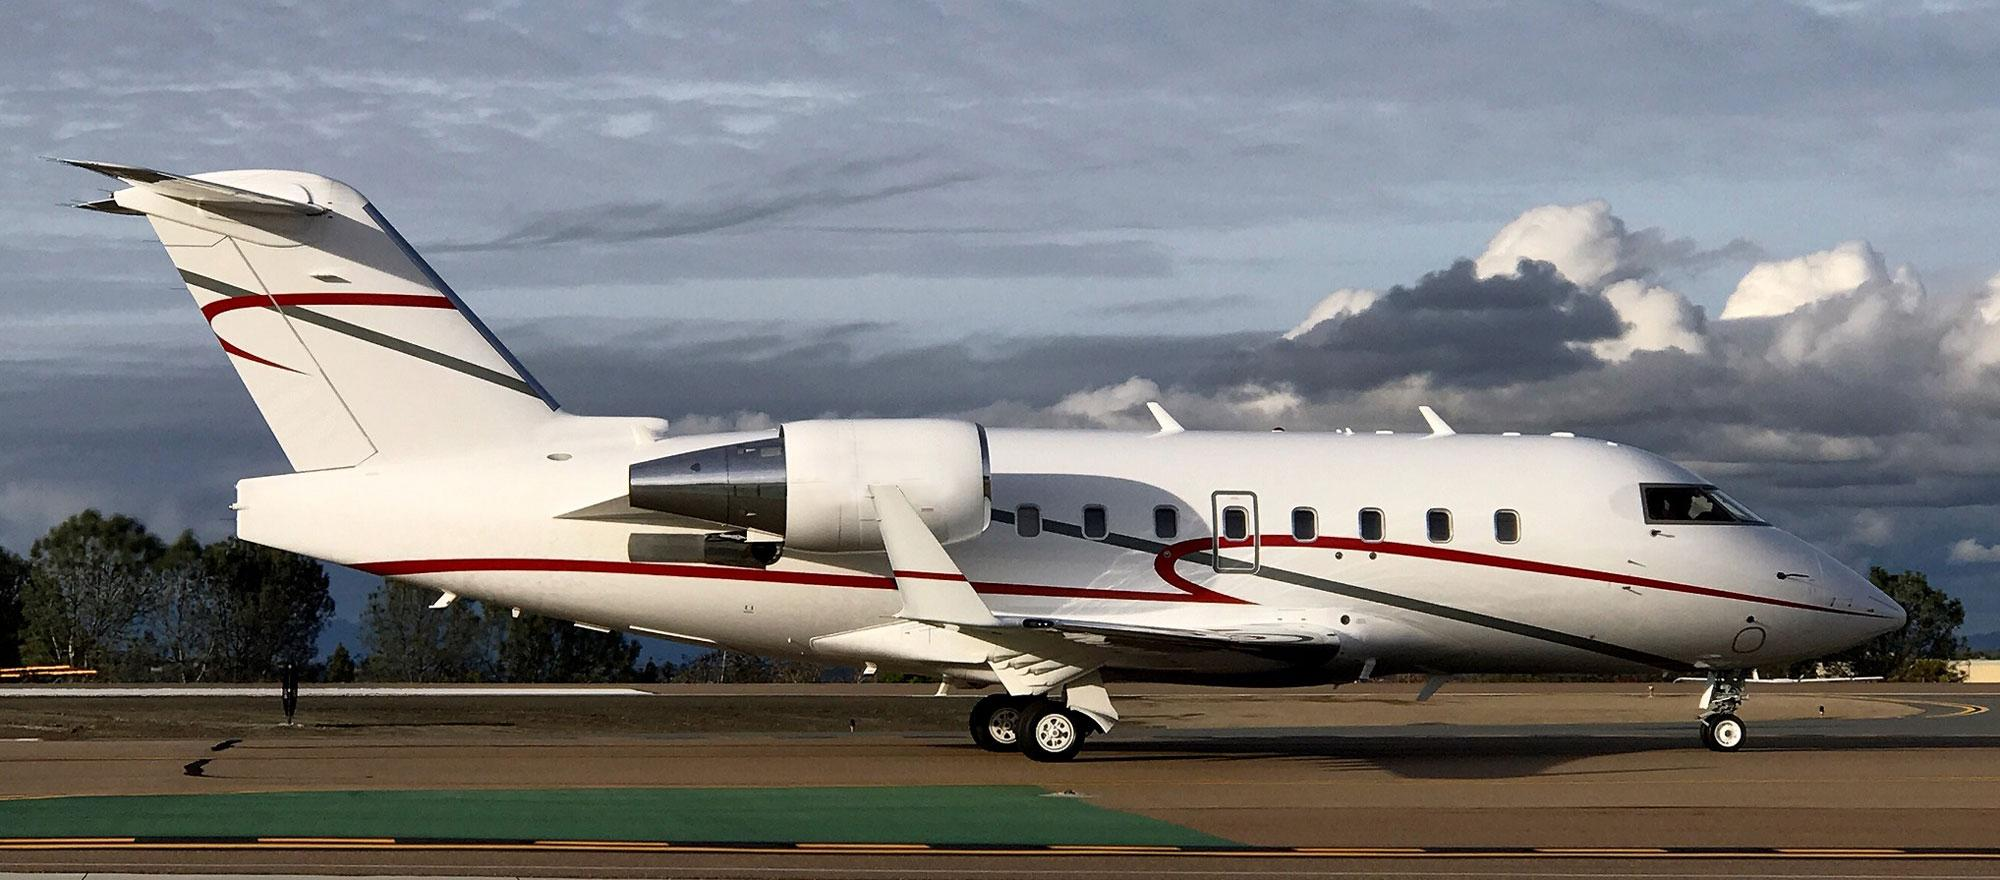 Dr. Hariri's current jet is a tricked out Challenger 604 XT.